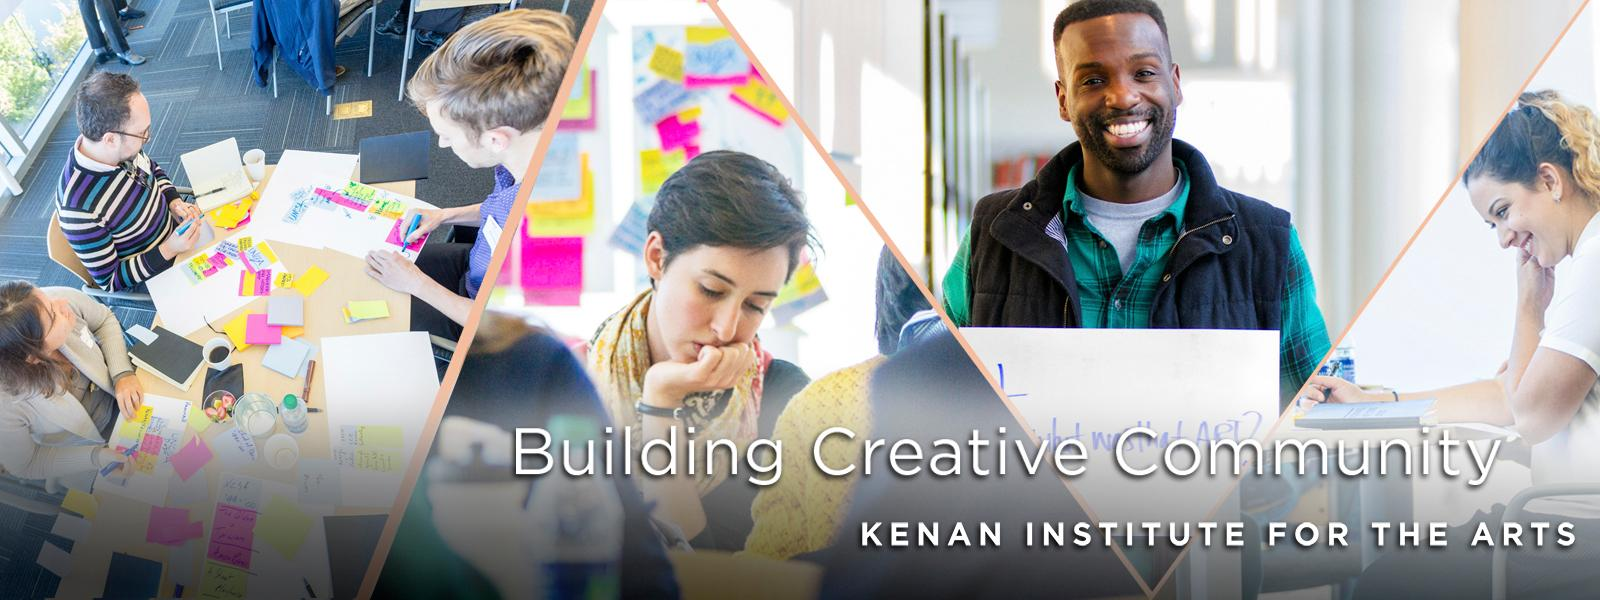 Building Creative Community - Kenan Institute for the Arts